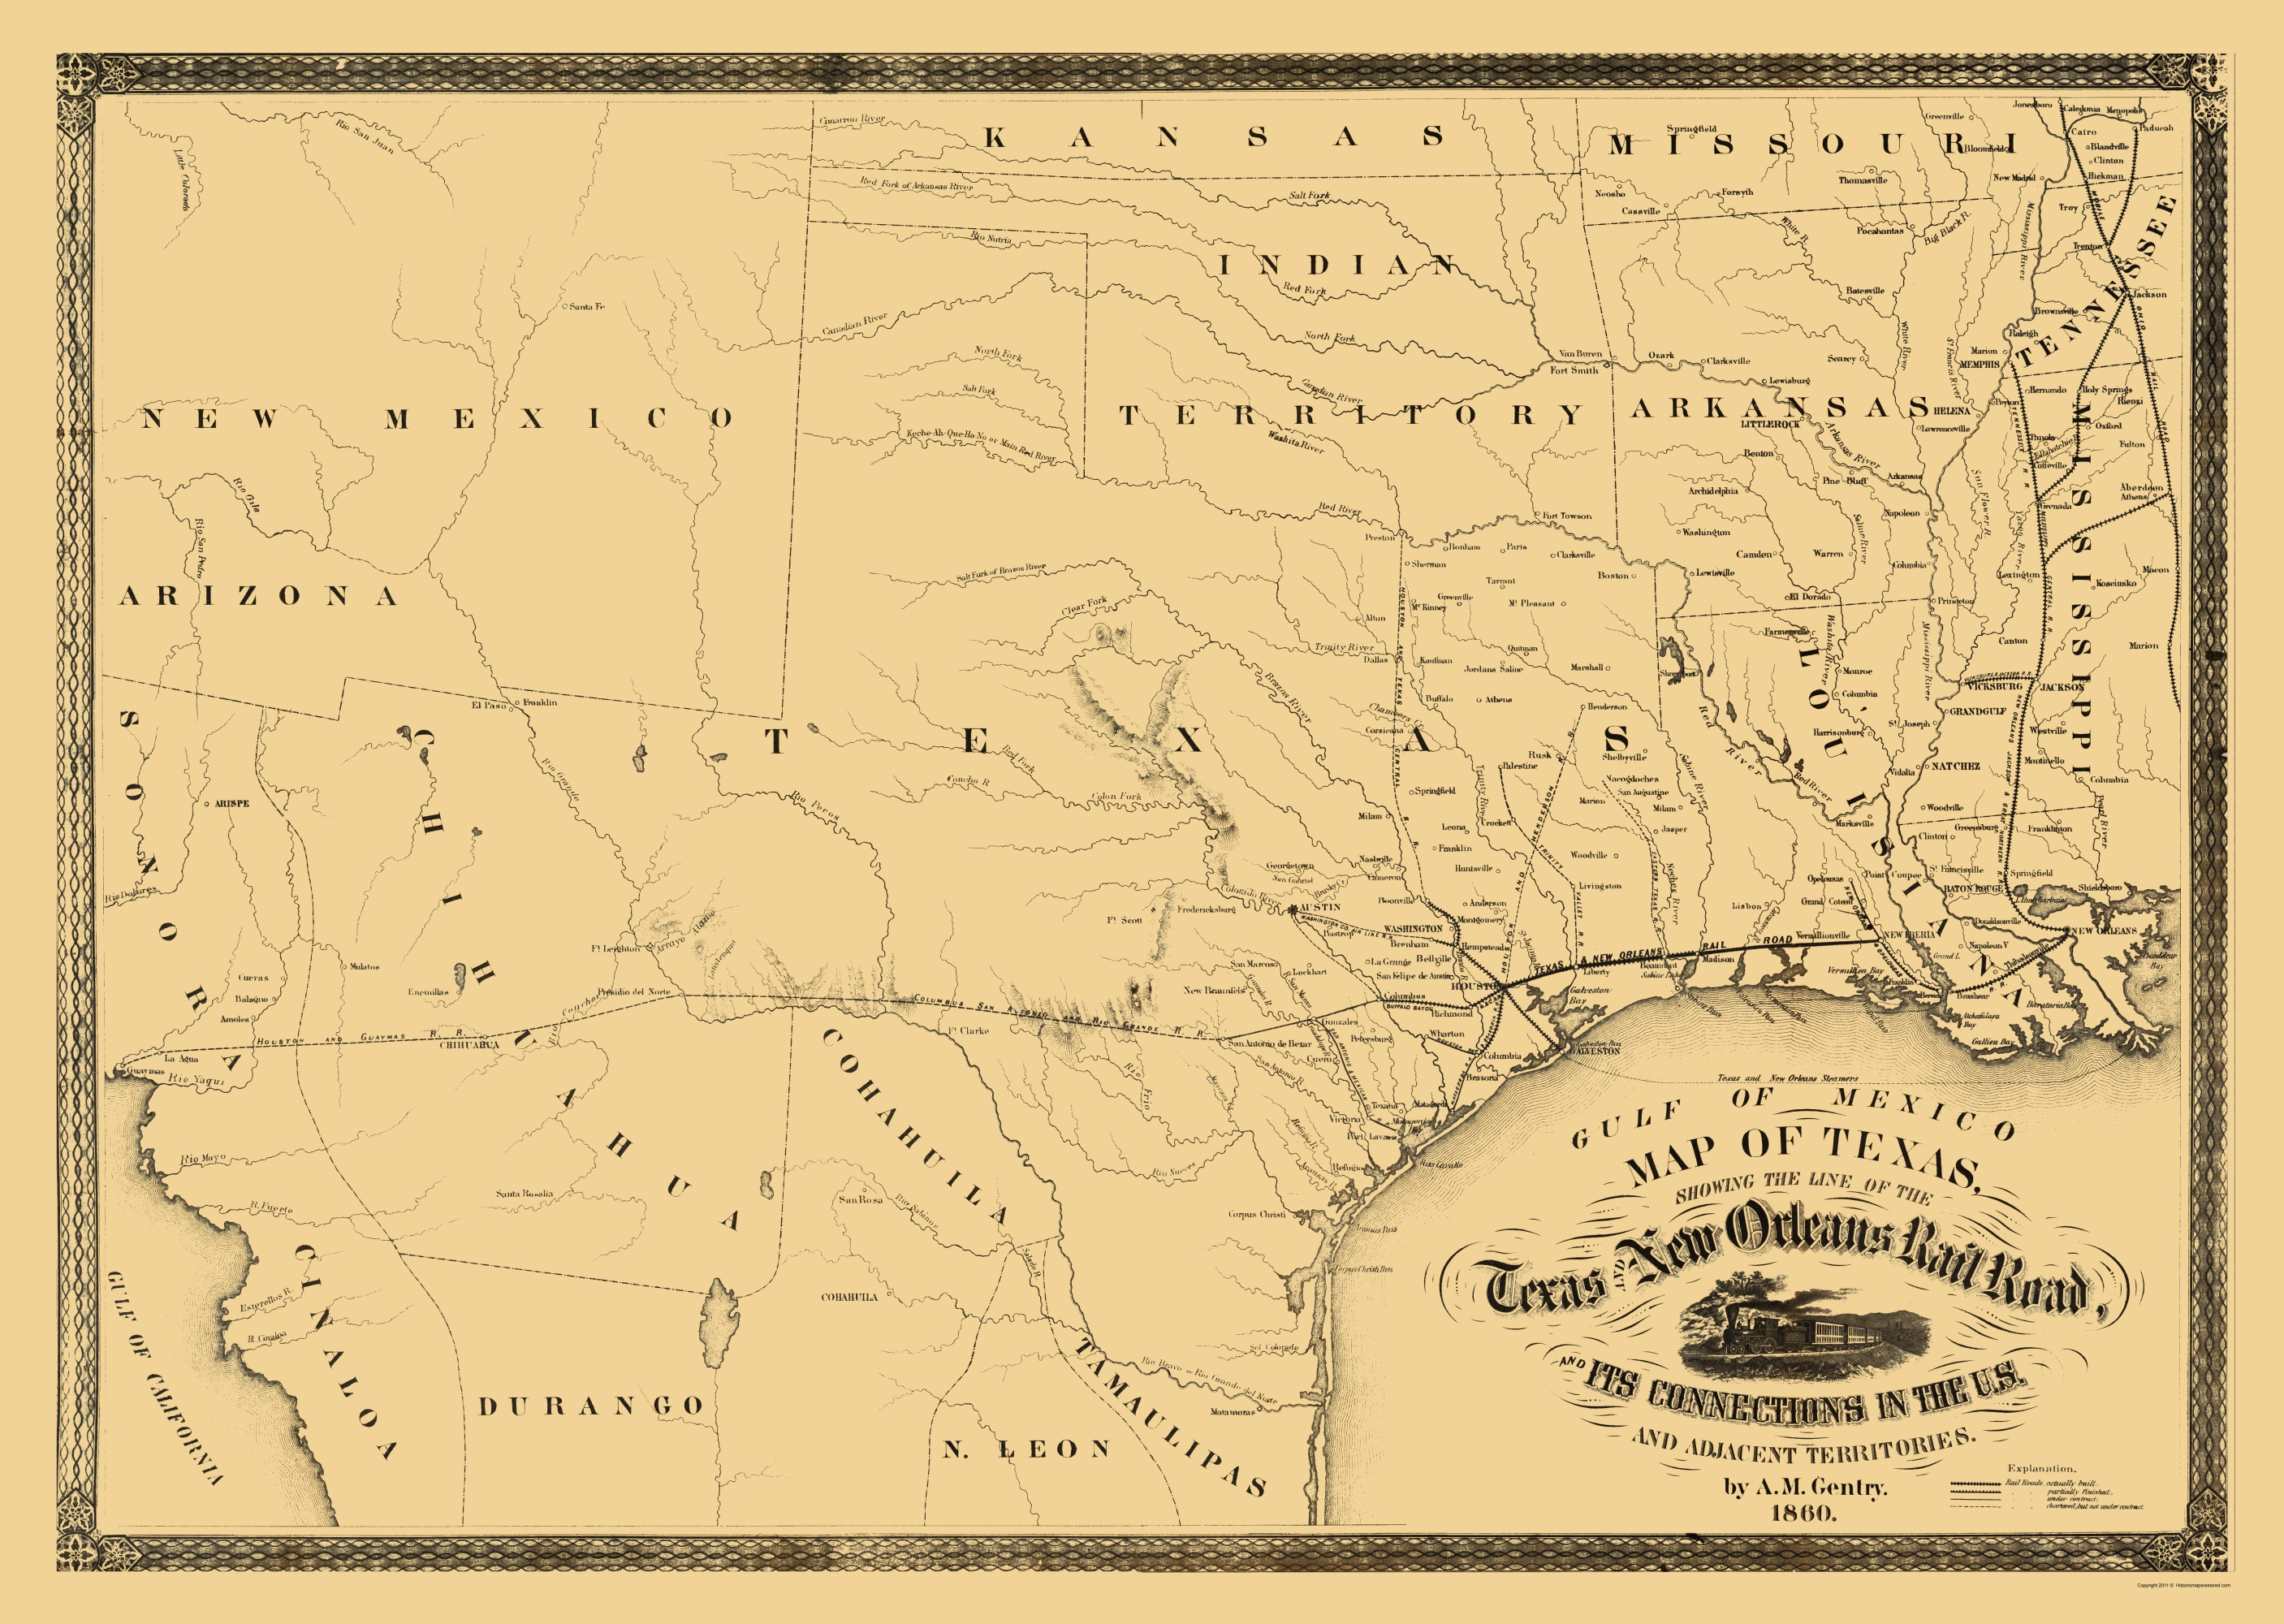 Old Louisiana Railroad Maps Maps of the Past